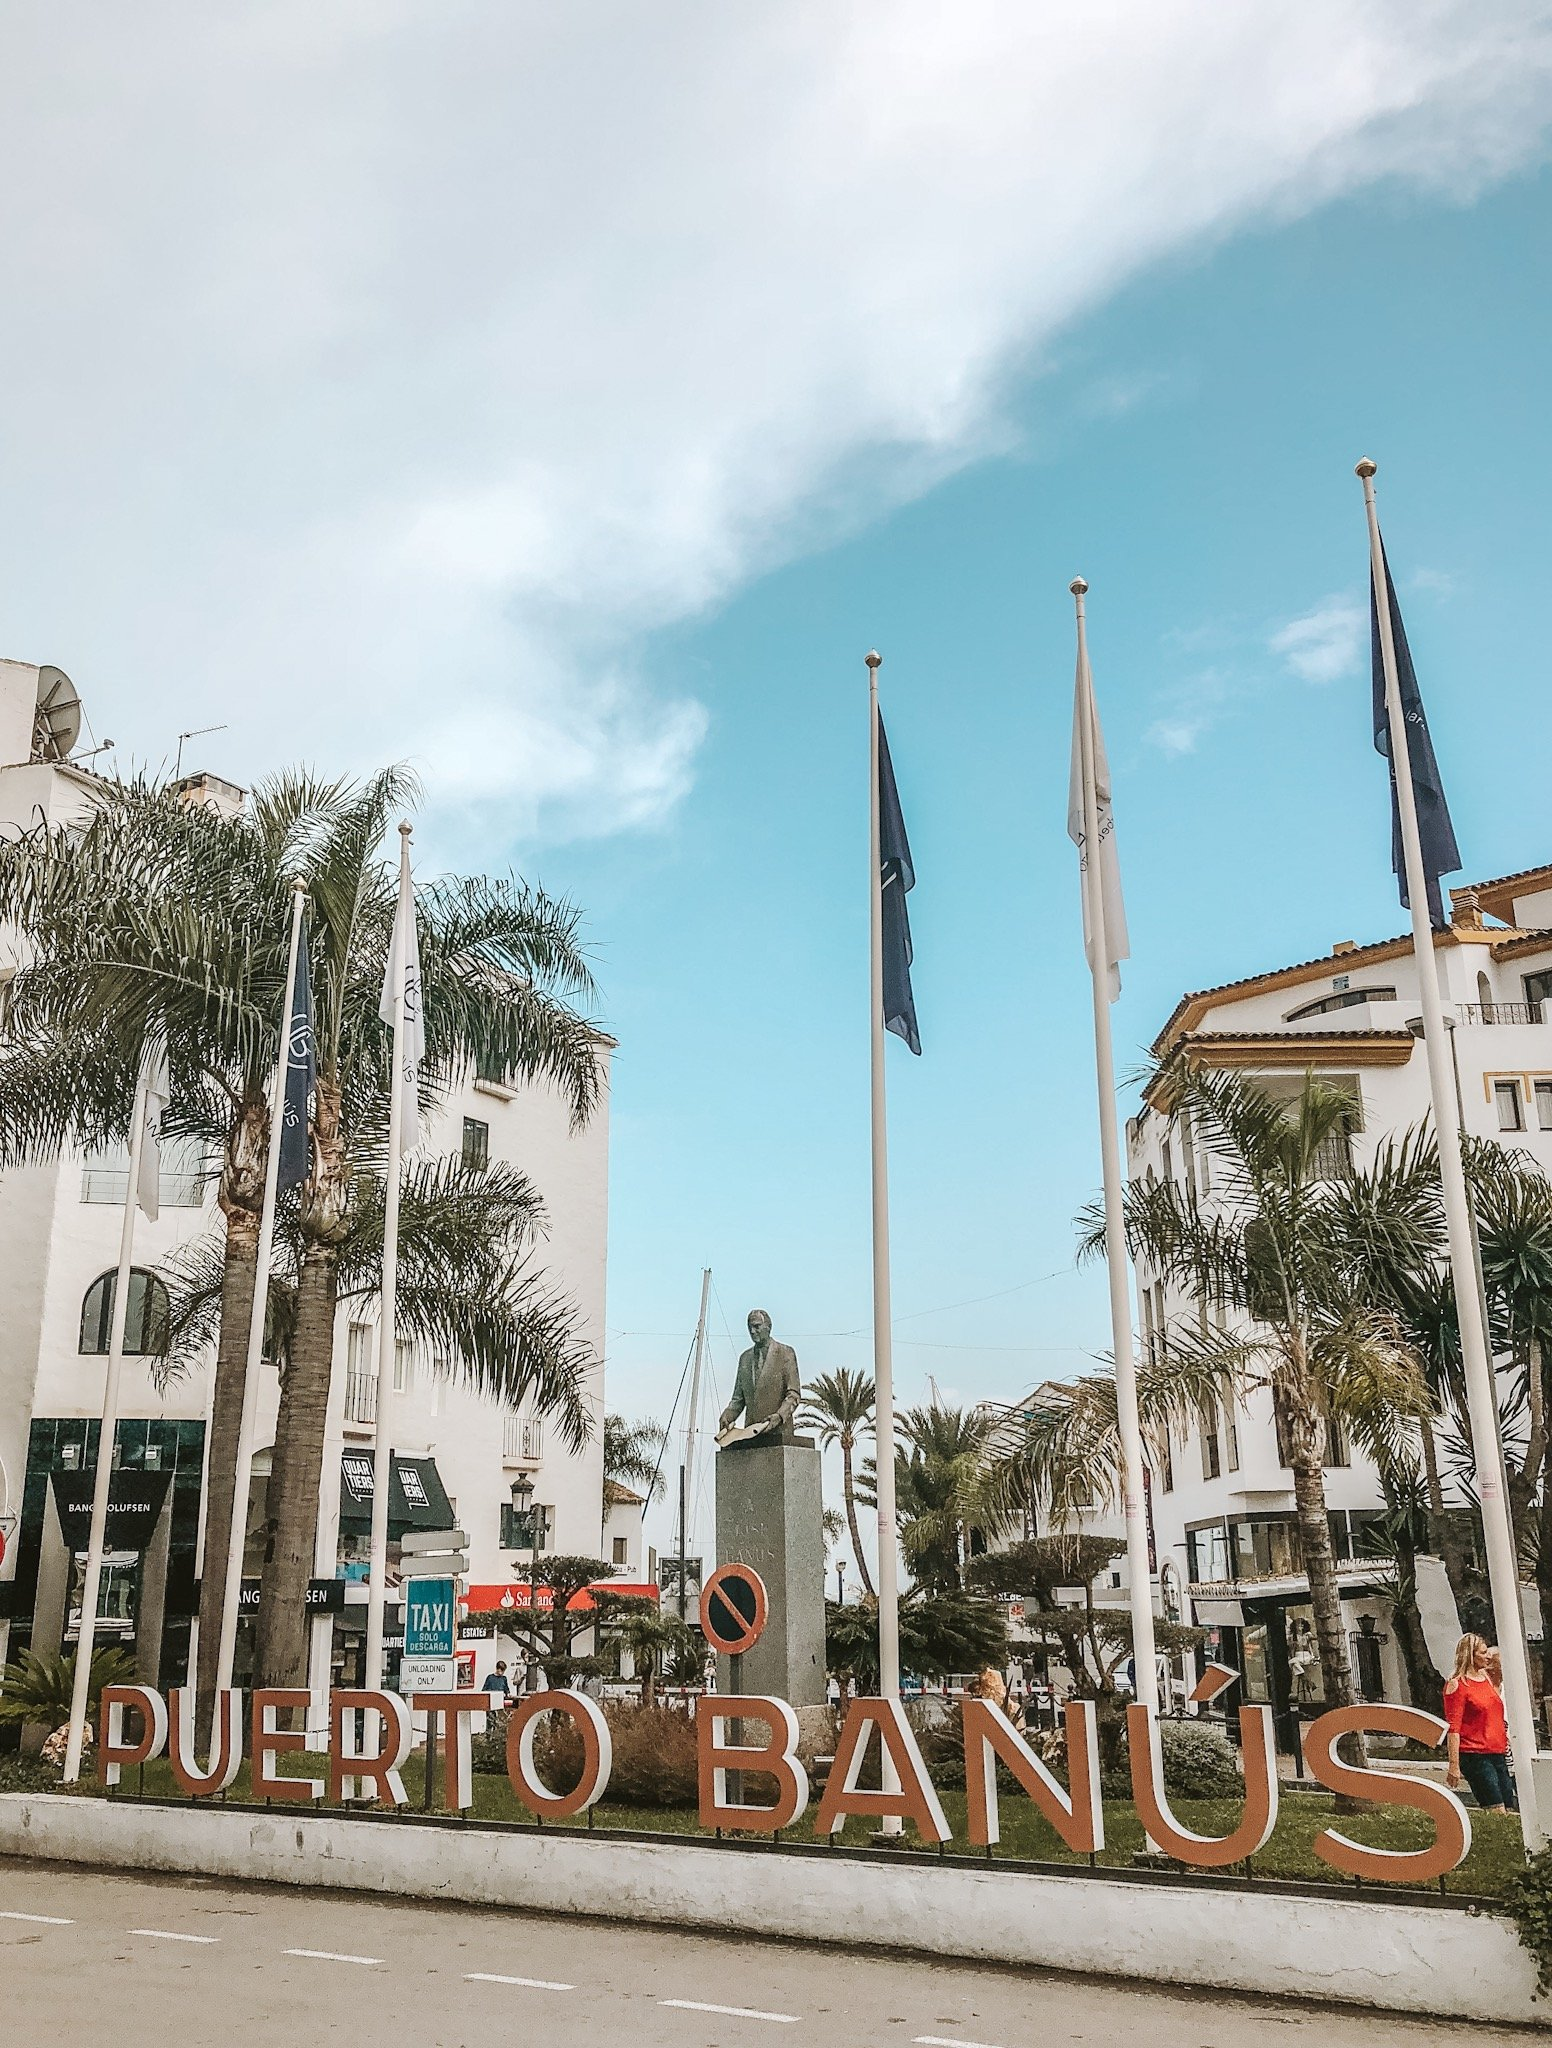 Things to do in Puerto Banus, find the best bars, nightlife, beachclubs and info in this ultimate guide with a handy map of the port